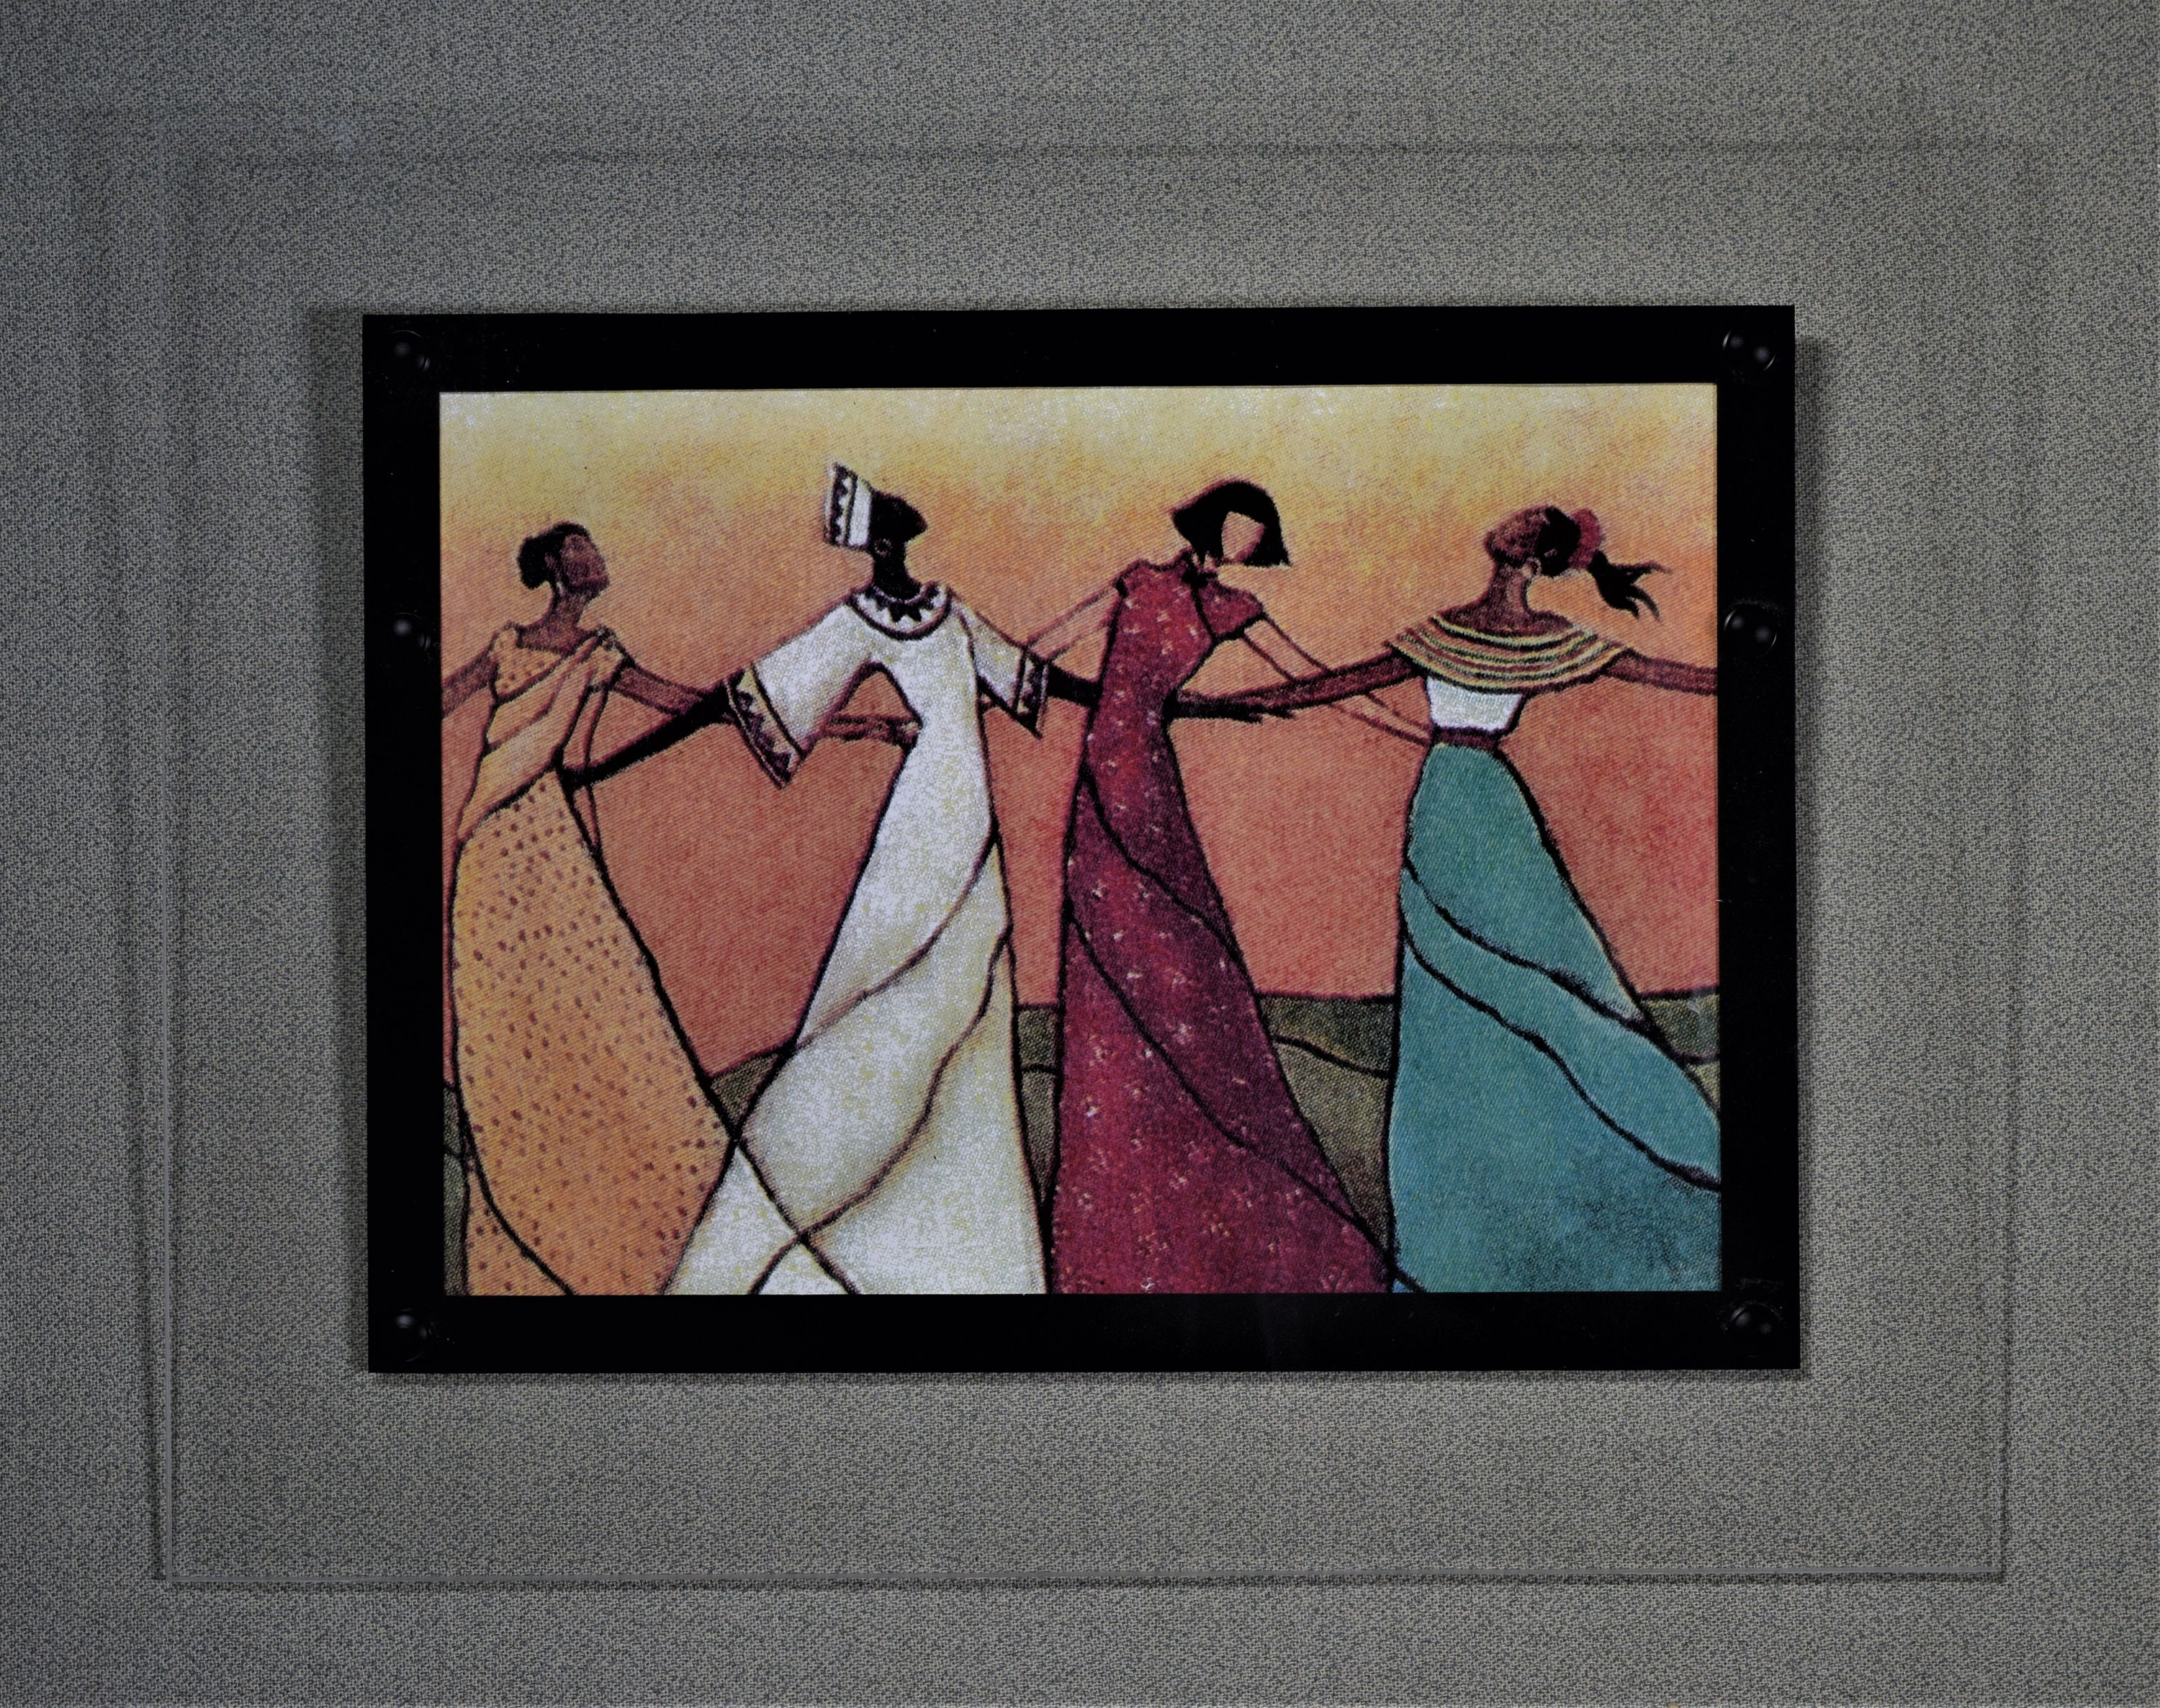 ACRYLIC Frame 16x20 Single Sheet LARGE to fit Art Size 14x18 or ...